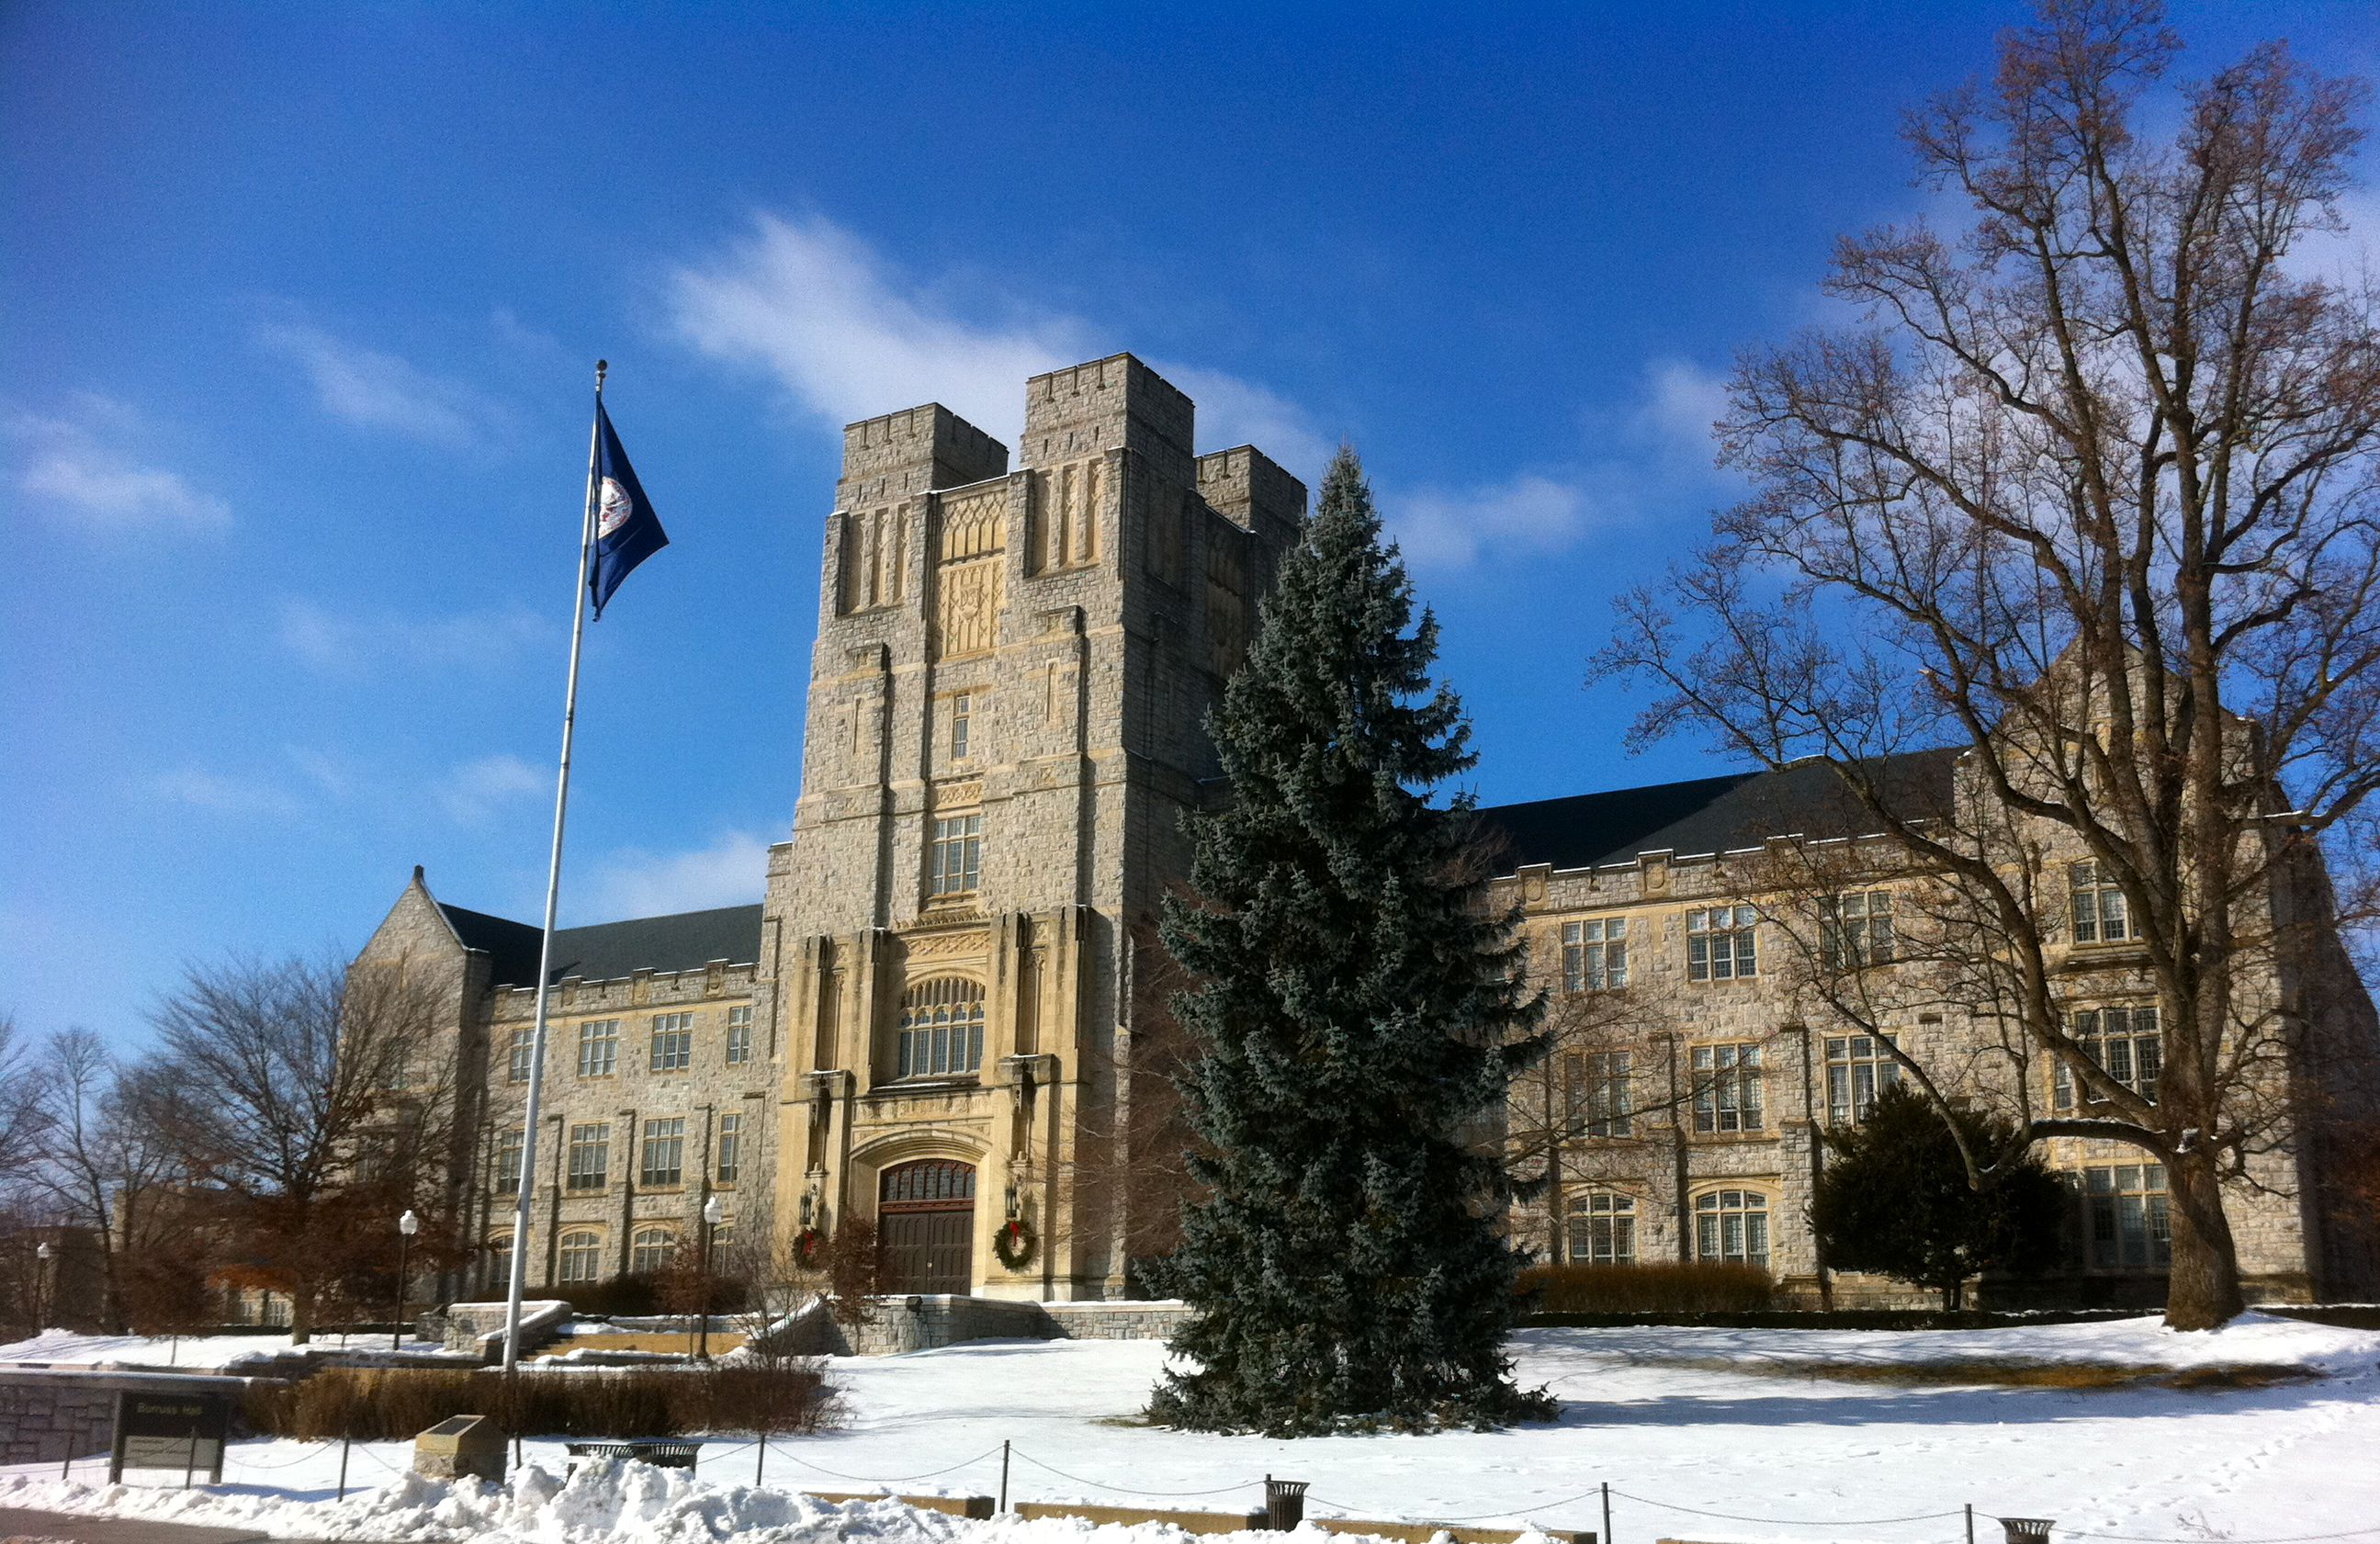 (2010) Burruss Hall on the campus of Virginia Tech; image by CBGator87 - Own work, CC BY-SA 3.0, https://commons.wikimedia.org/w/index.php?curid=17875279